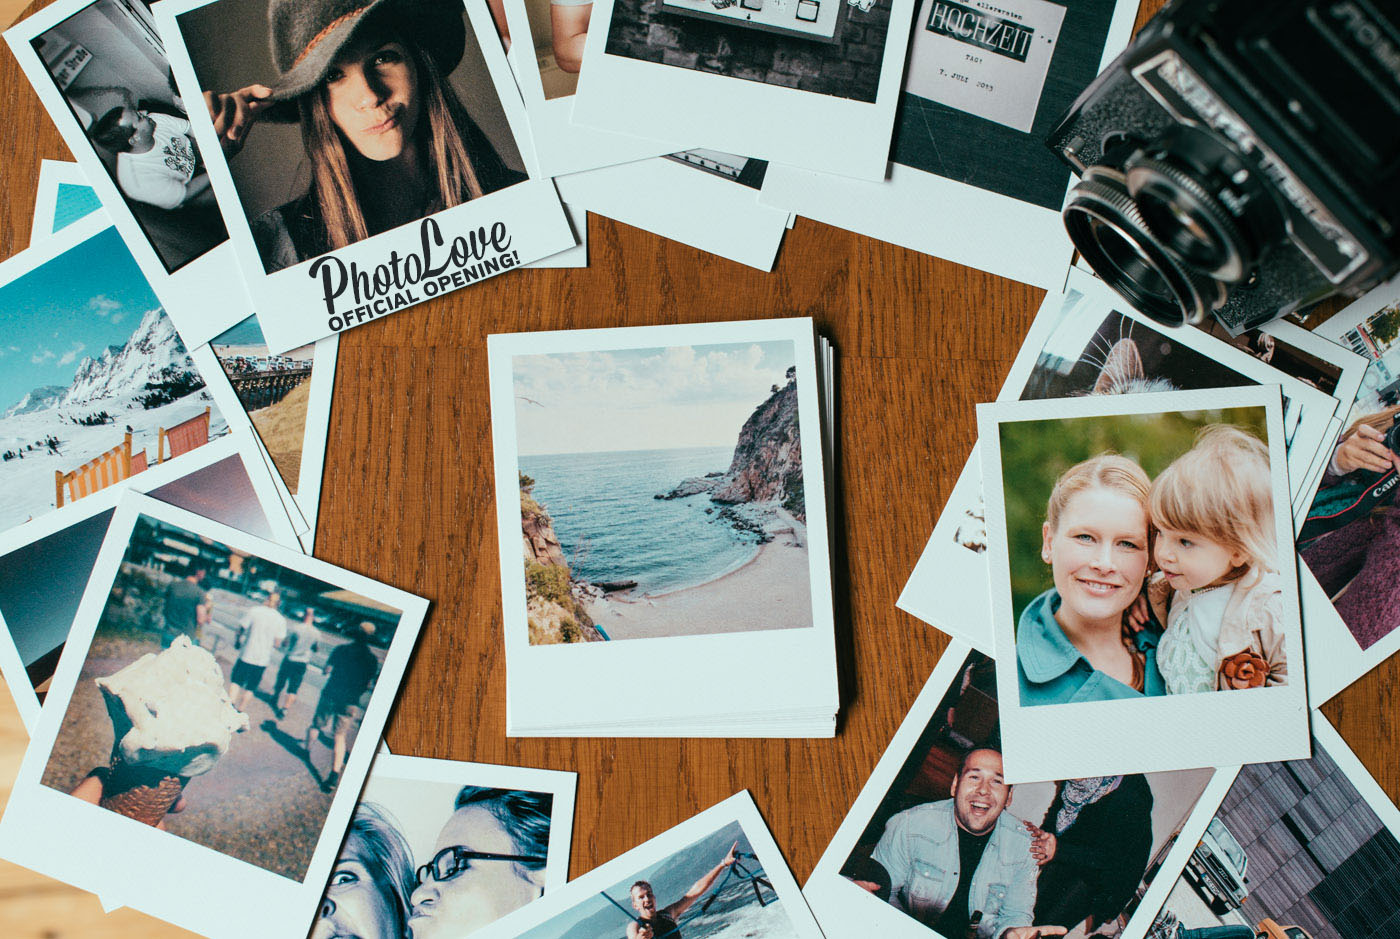 Instagram Fotos Drucken Photoloveprints Geht Online Instagram 43 Fb 43 Eyeemfotos